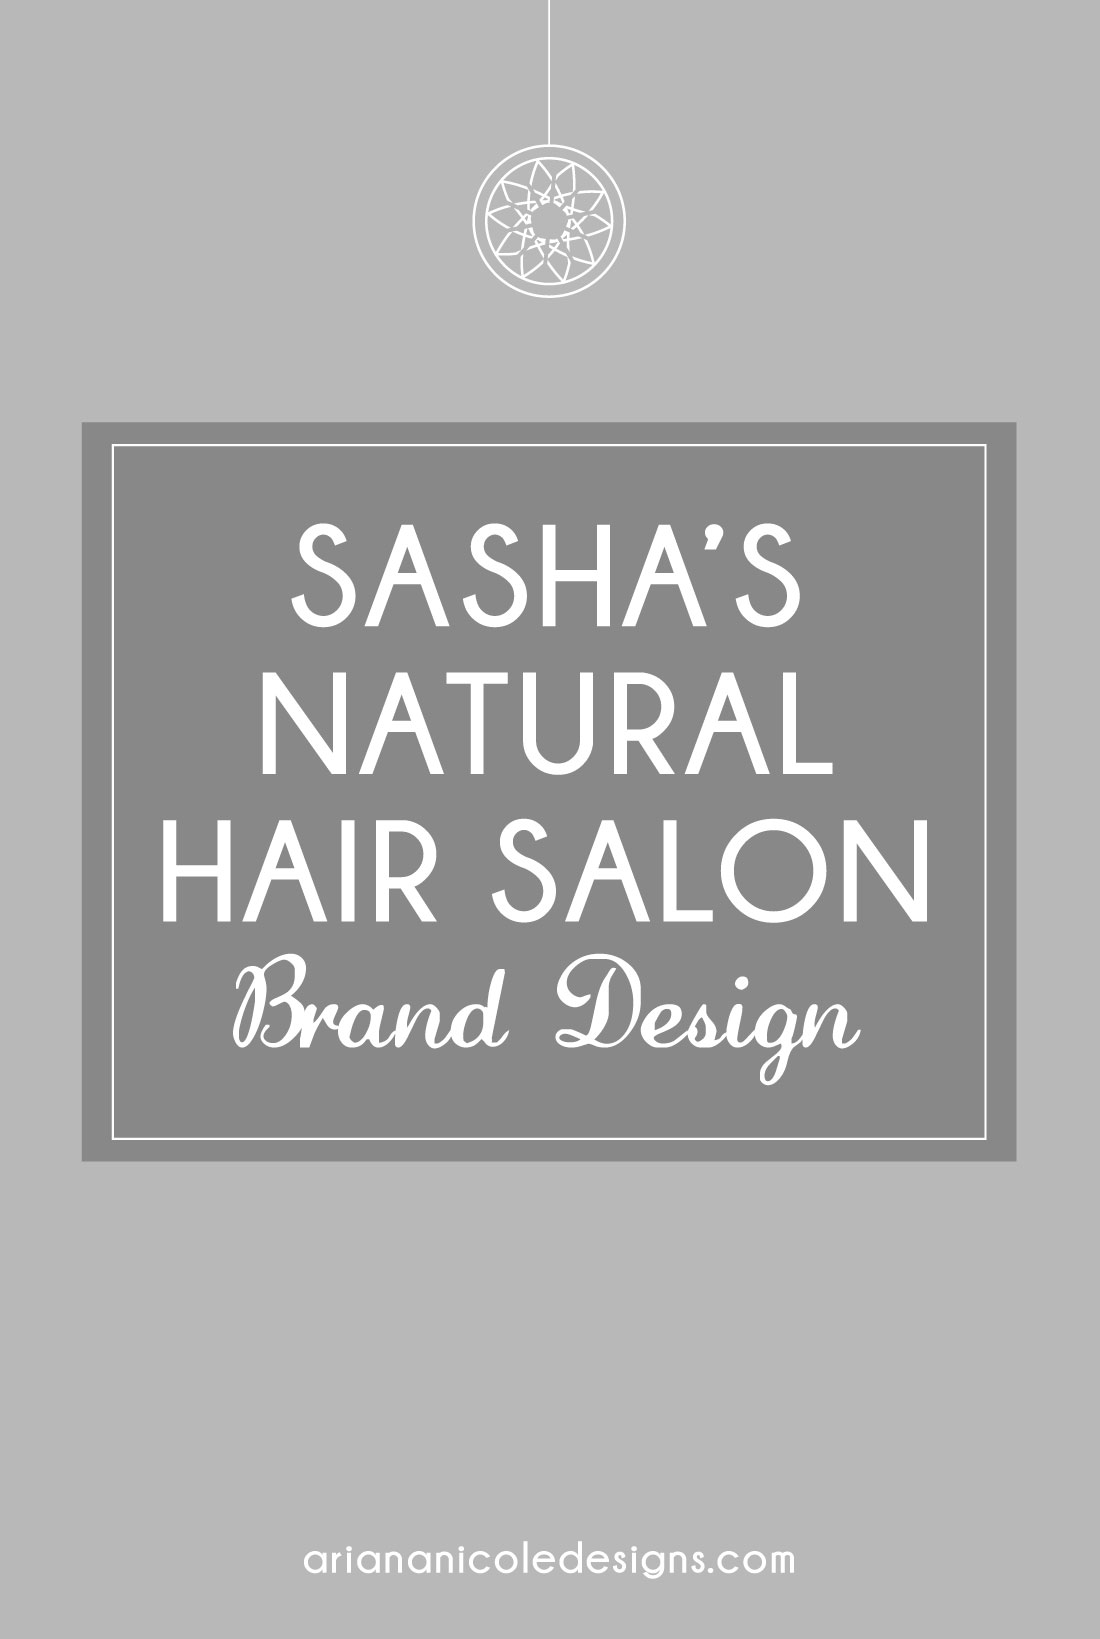 Sashas_Natural_Hair_Salon_Brand_Design_Ariana_Nicole